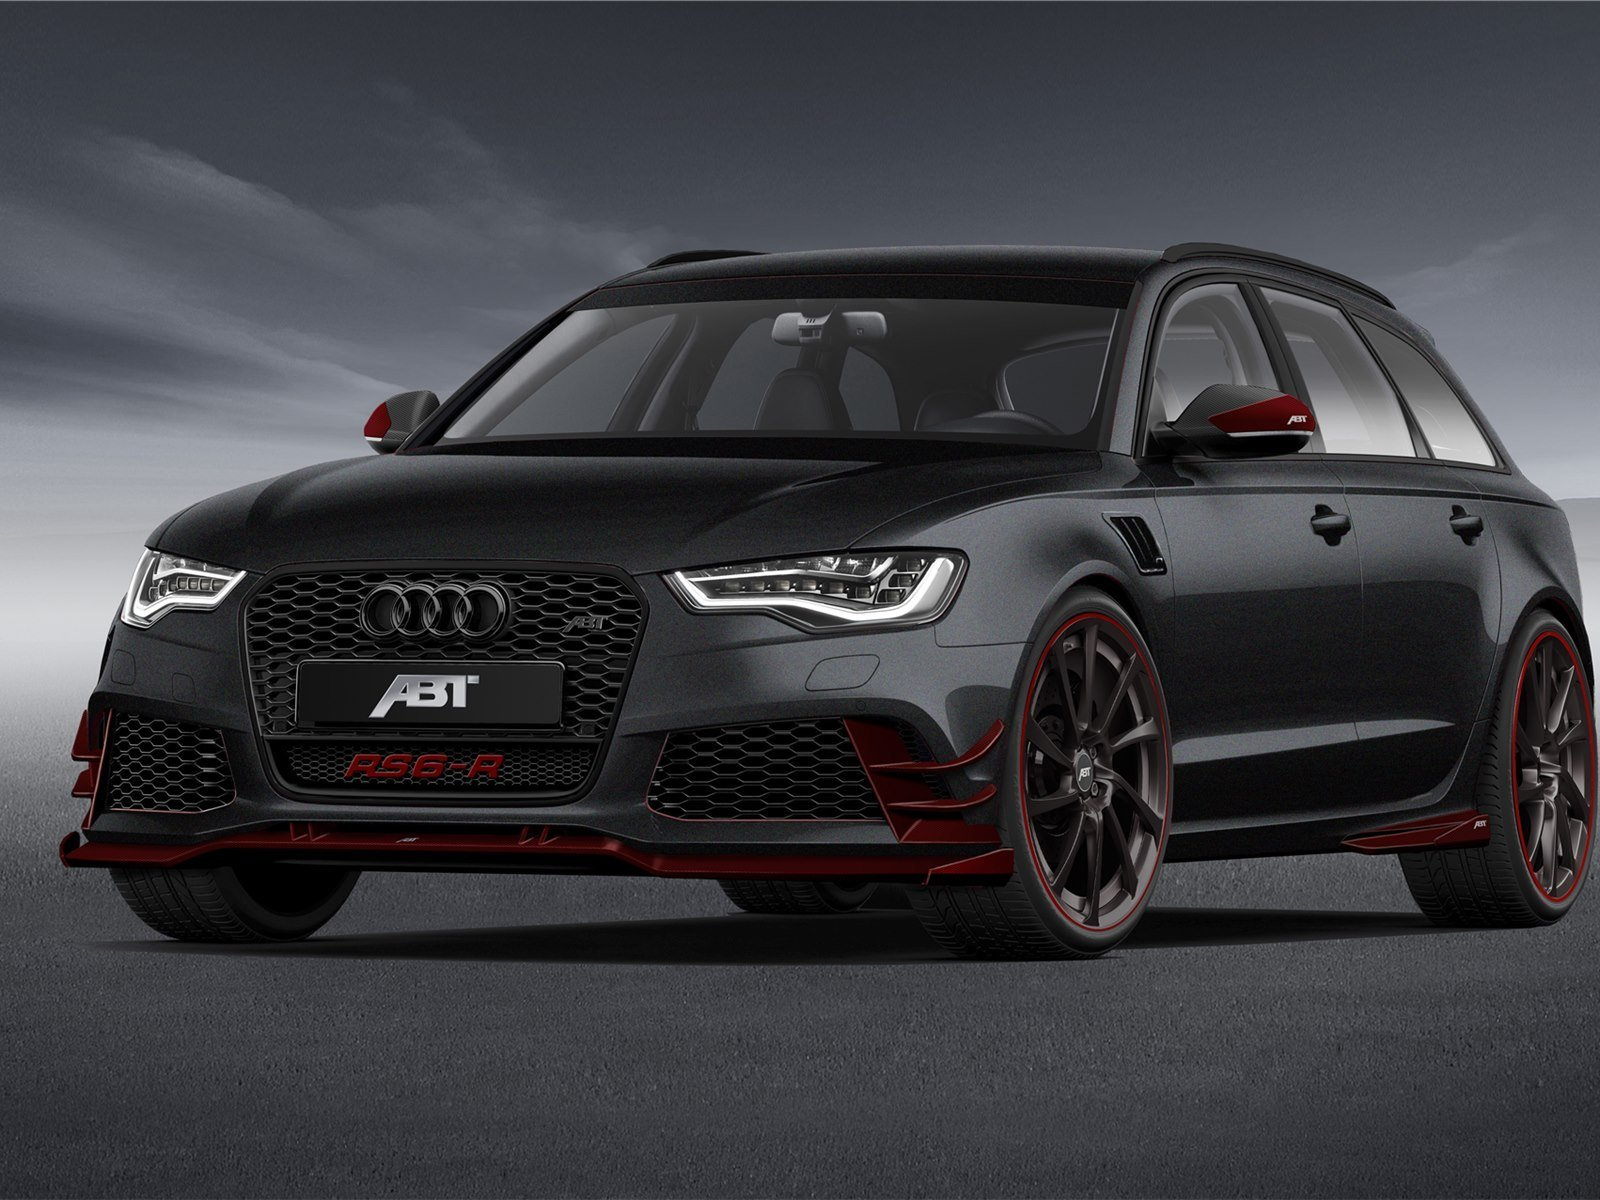 Latest Abt Sportsline Audi Rs6 R 2014 Exotic Car Picture 13 Of Free Download